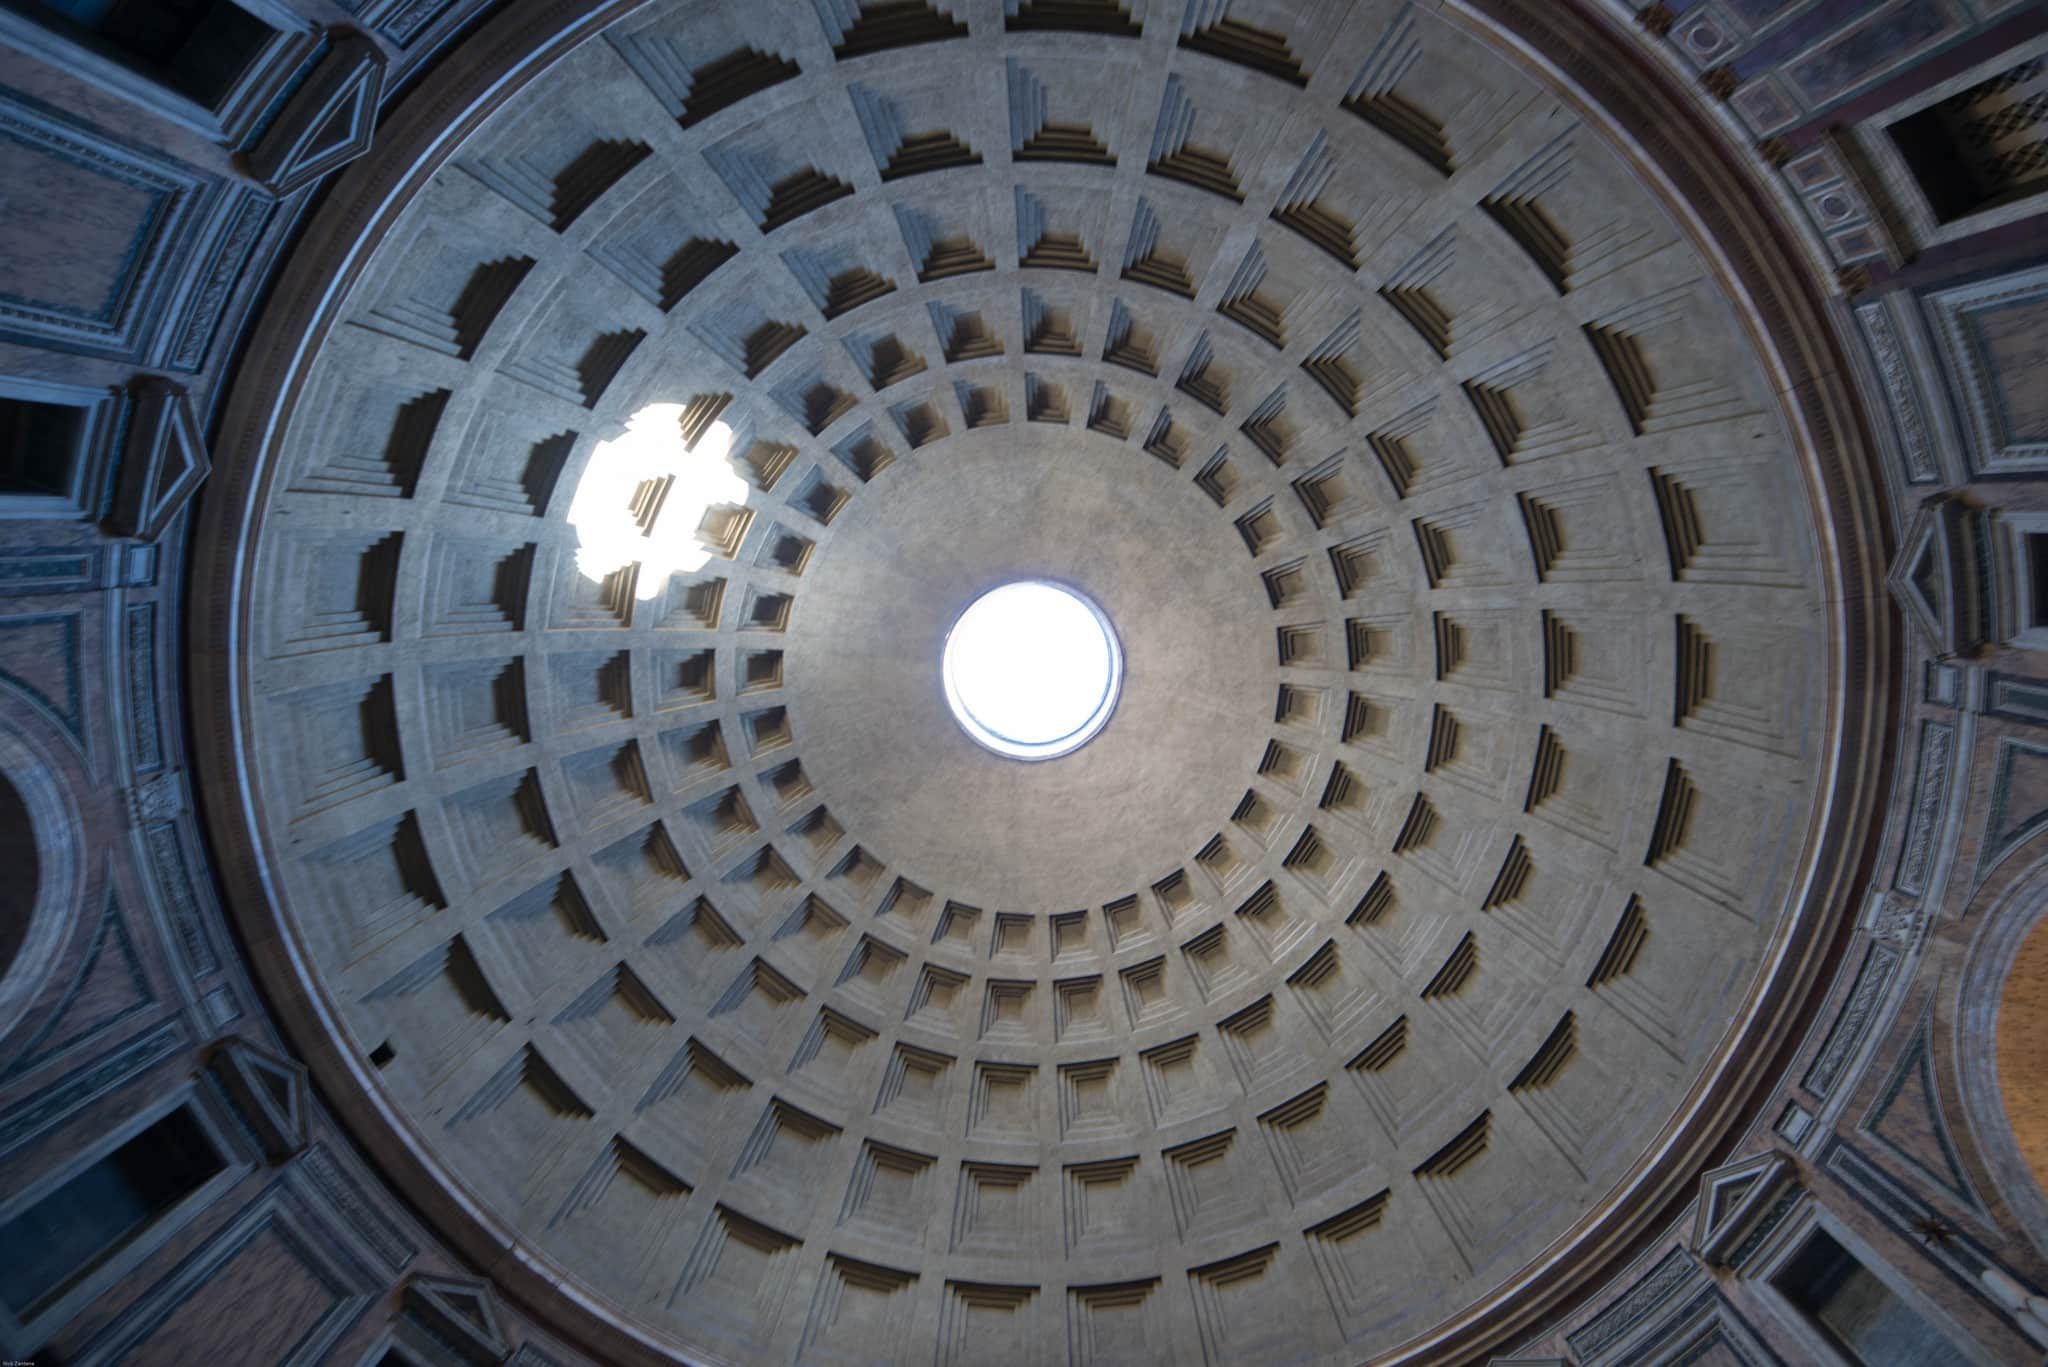 Pantheon Rome ceiling